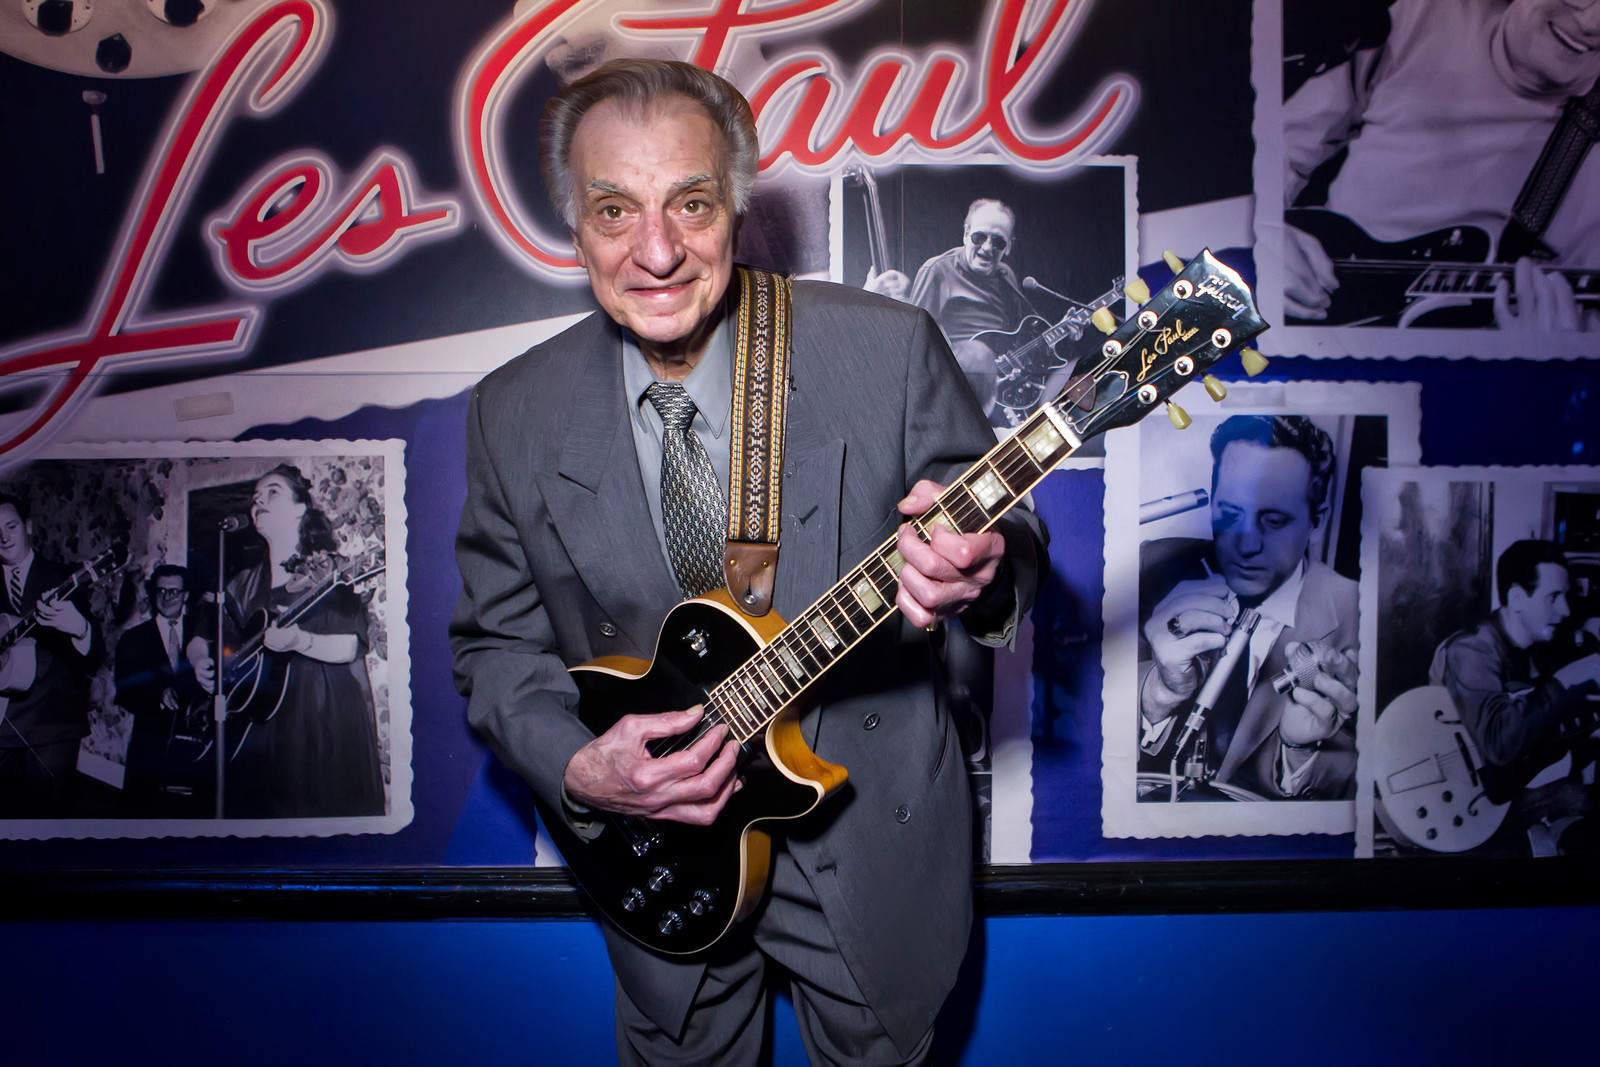 All in honor of Les Paul